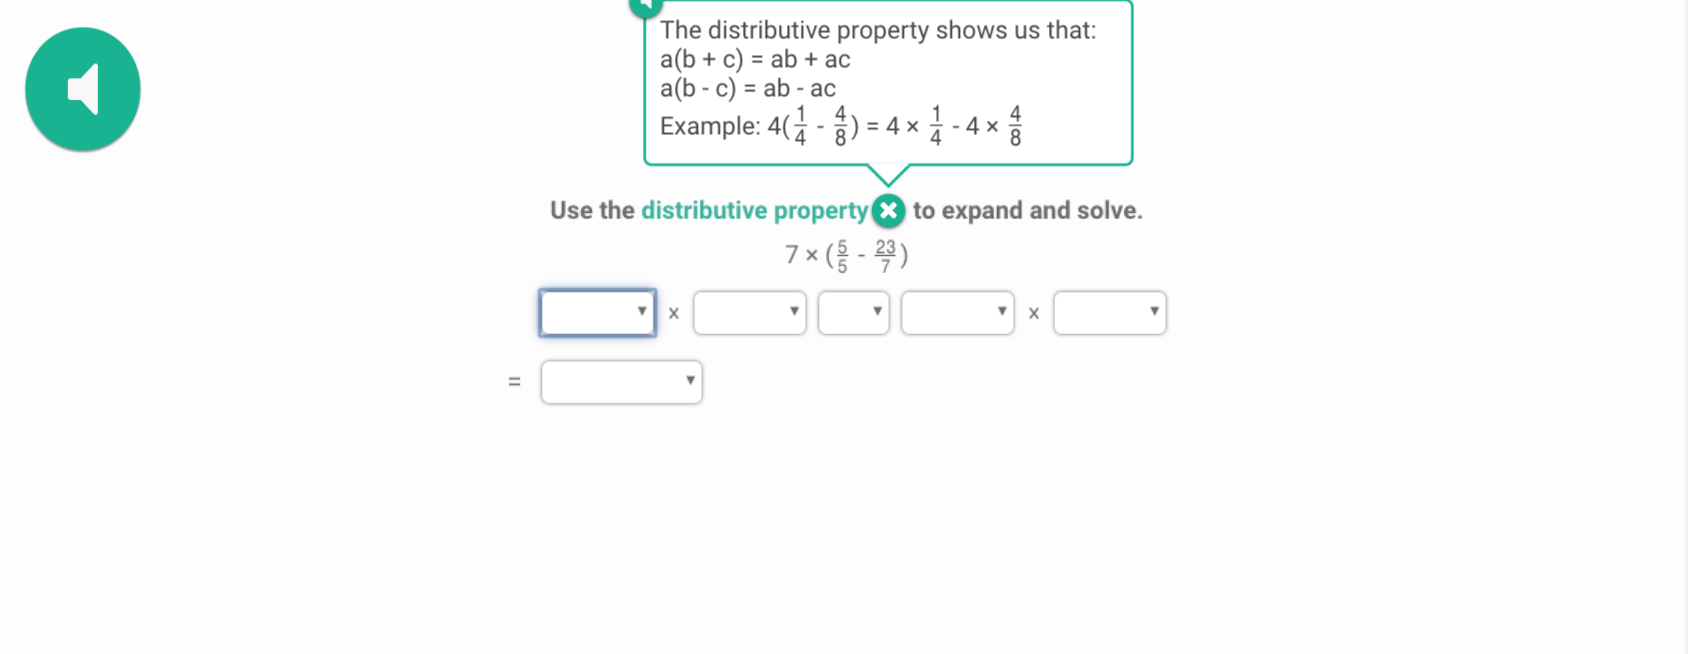 Exploring distributive property in Prodigy